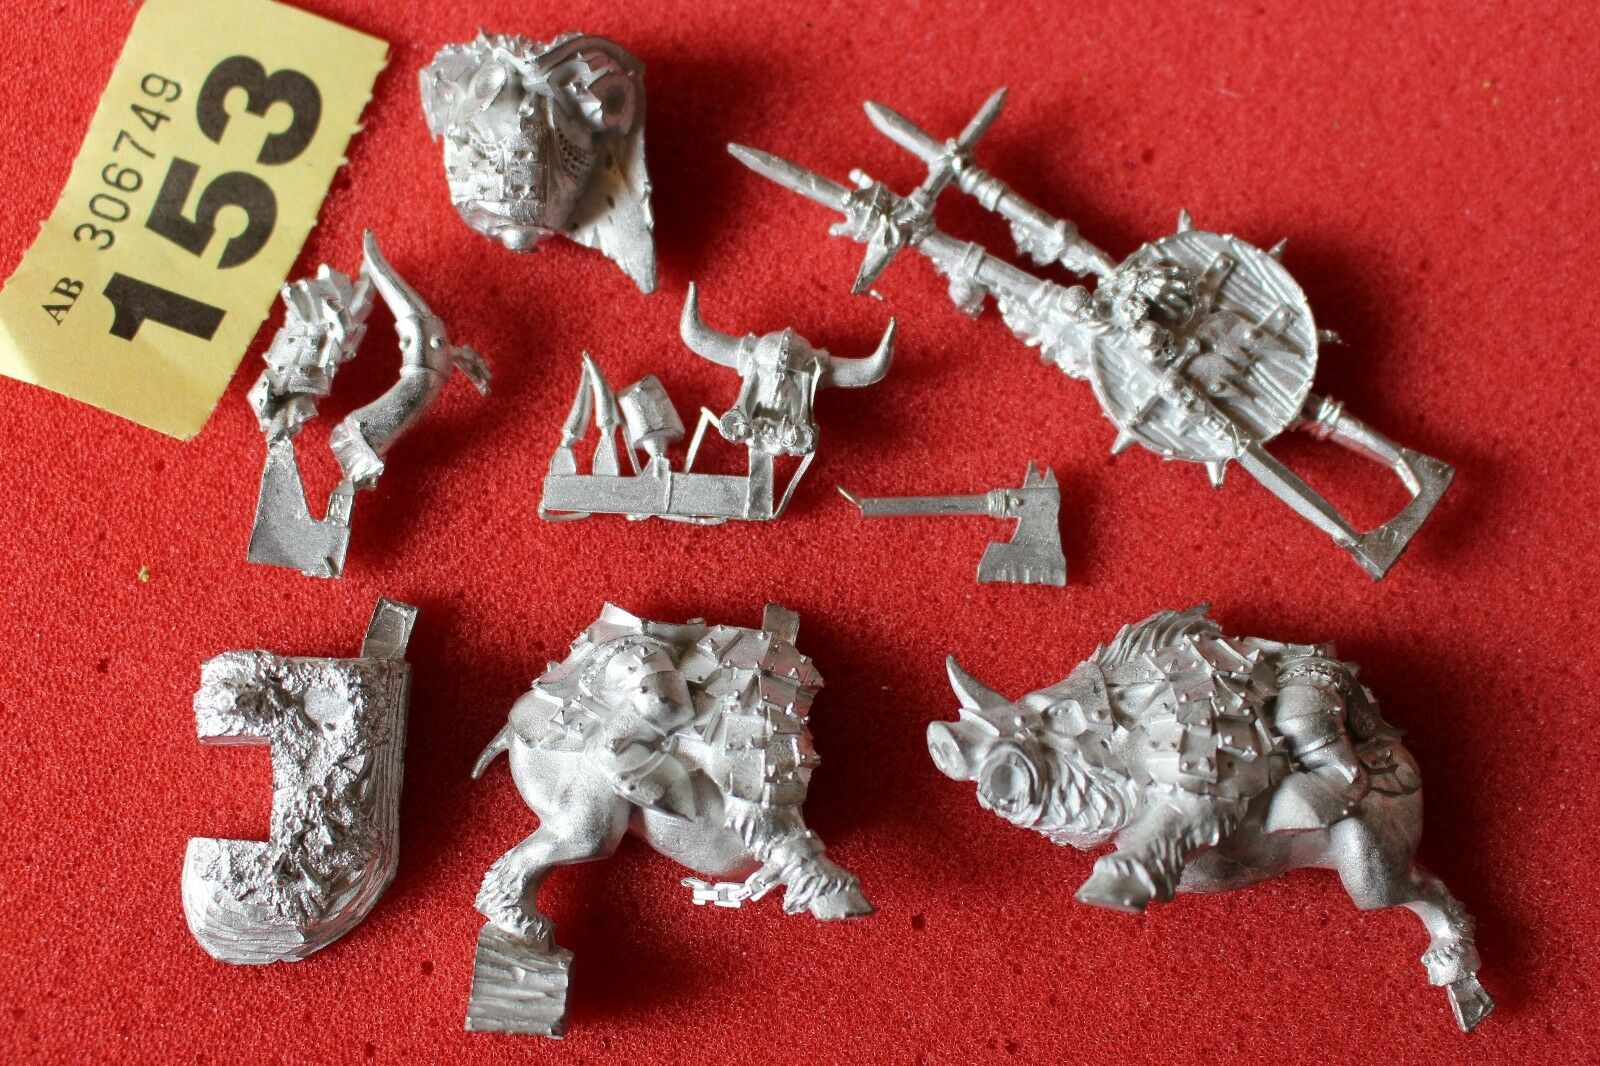 Games Workshop Warhammer Orcs gorbad Ironclaw Metal Figure Set Warboss Sanglier Épuisé